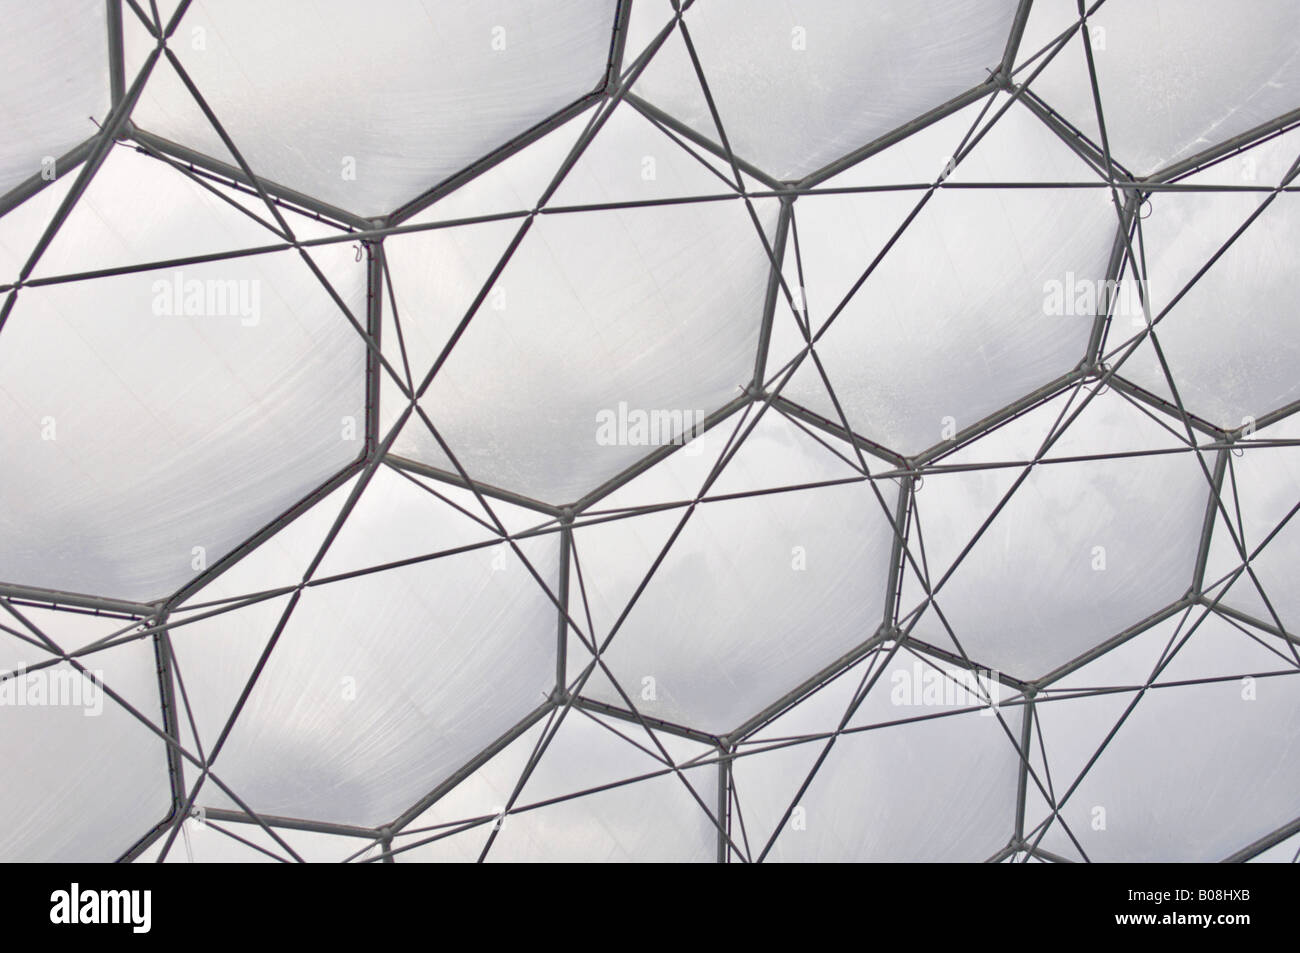 Iron Structure Of The Eden Project Biome Roof In Cornwall England